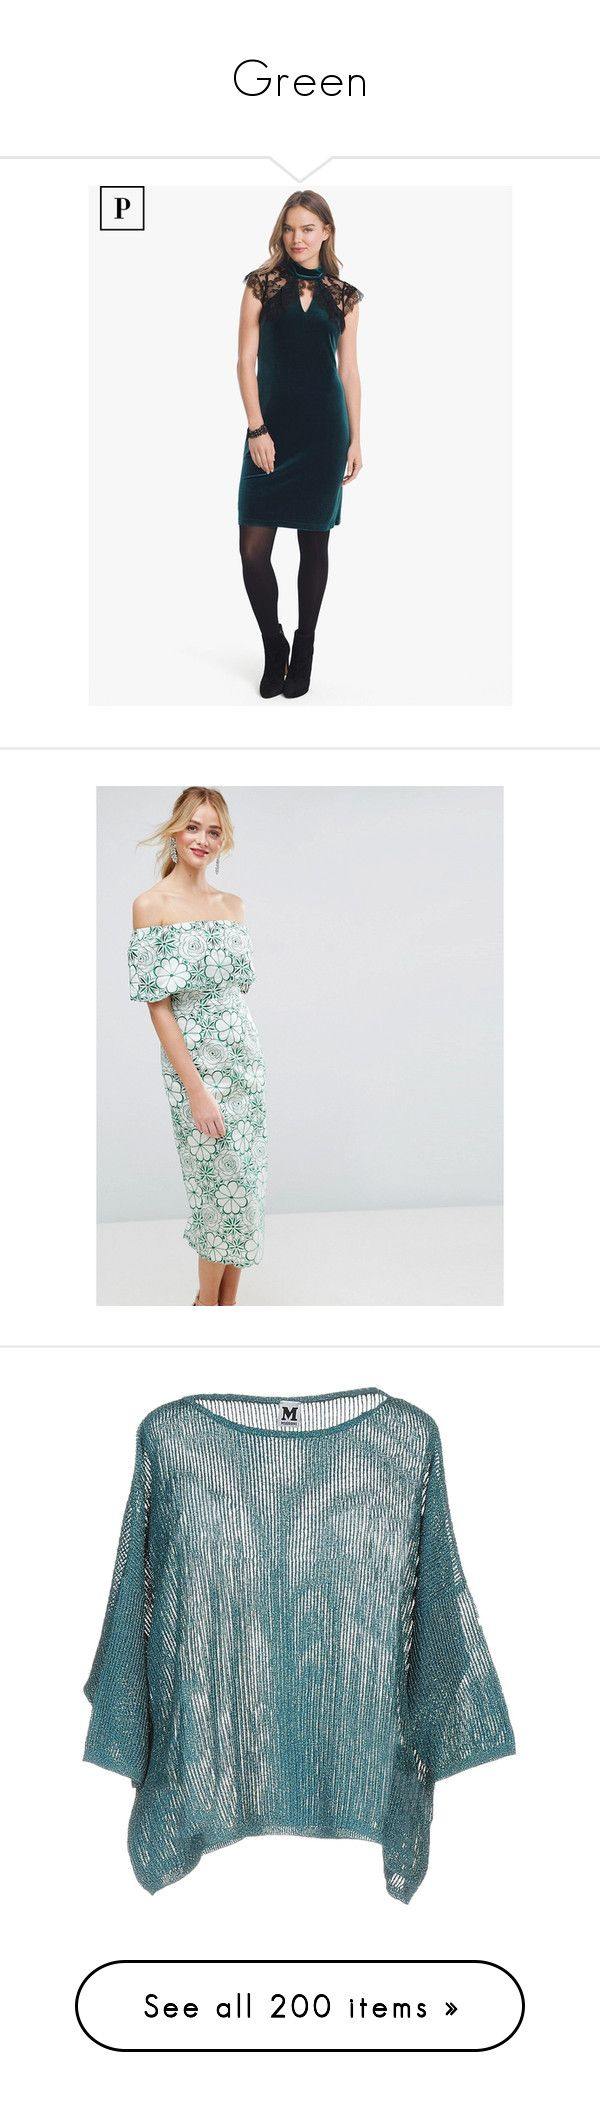 """""""Green"""" by miss-amazing-grace ❤ liked on Polyvore featuring dresses, petite, white lace cocktail dress, lace cocktail dress, lace formal dresses, white cocktail dress, white shift dresses, multi, bodycon party dresses and cocktail party dress"""